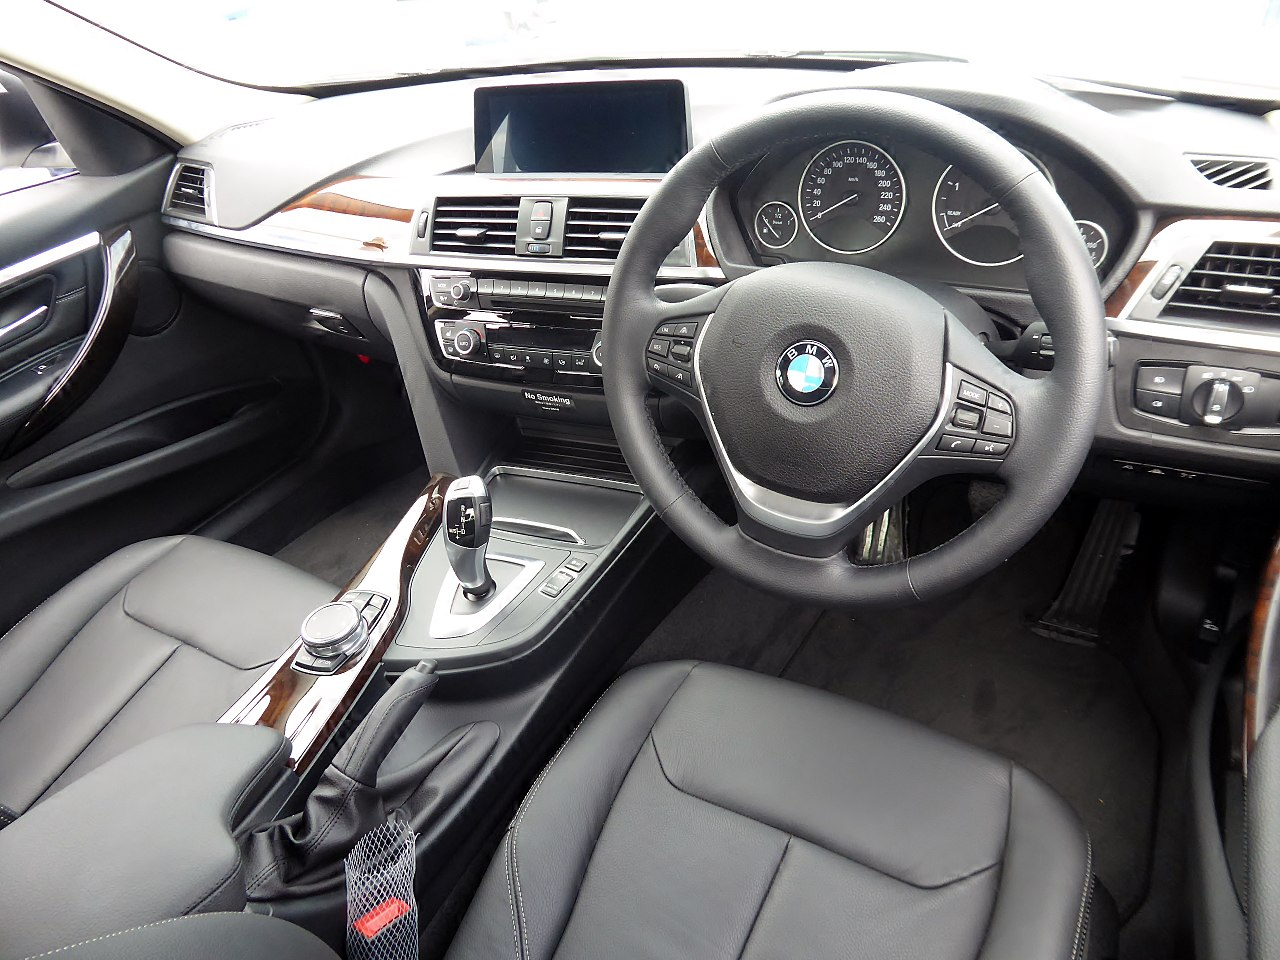 File:BMW 320d Luxury (F30) interior.jpg - Wikimedia Commons